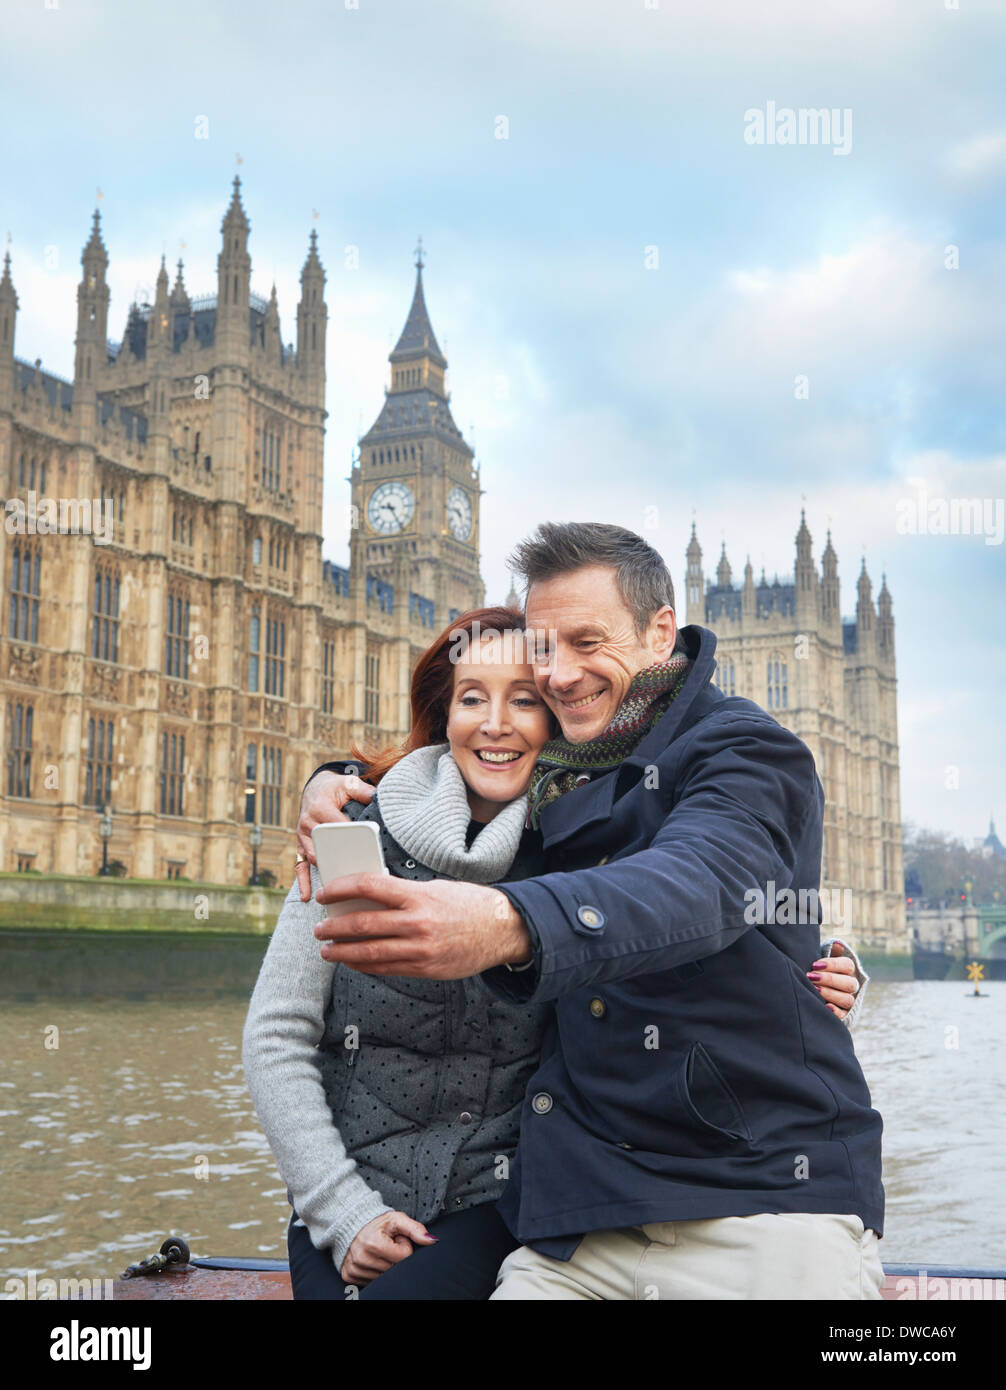 Mature tourist couple photographing selves and Houses of Parliament, London, UK - Stock Image